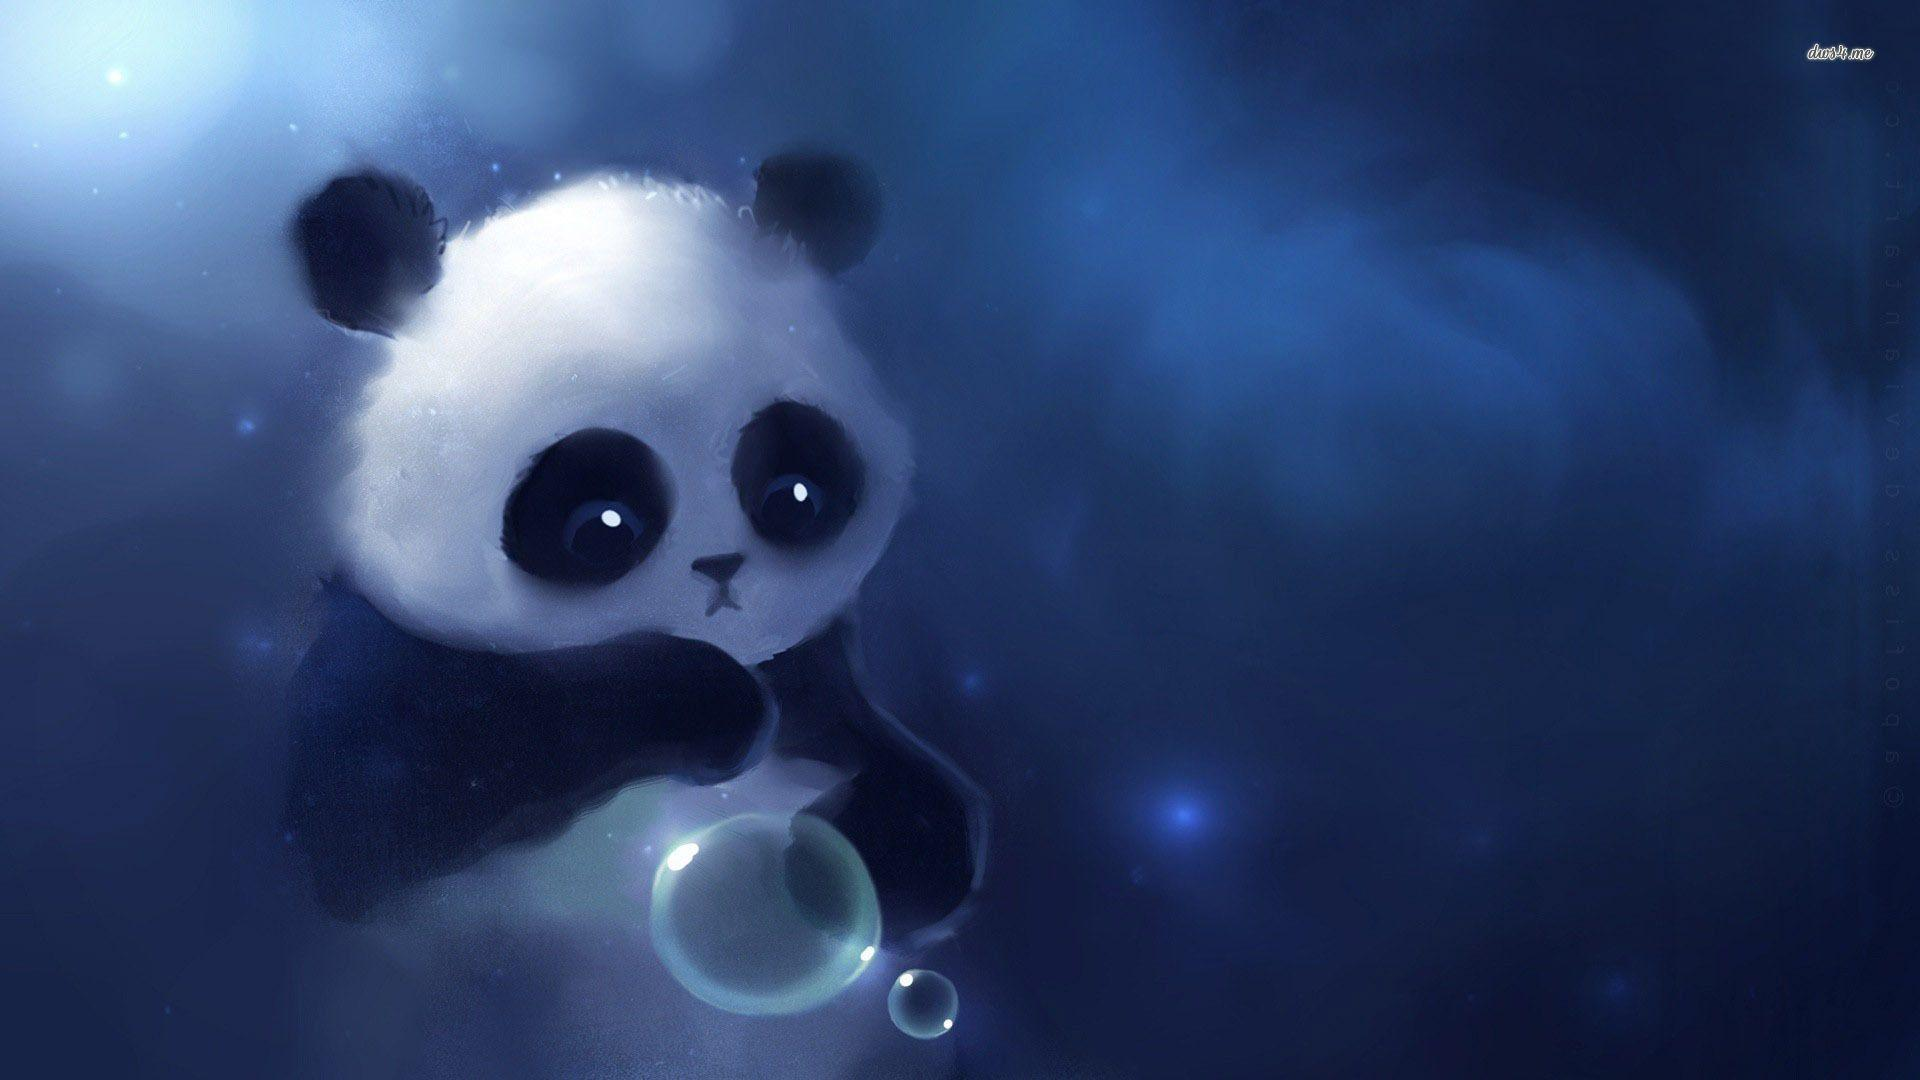 panda pictures hd wallpapers - photo #31